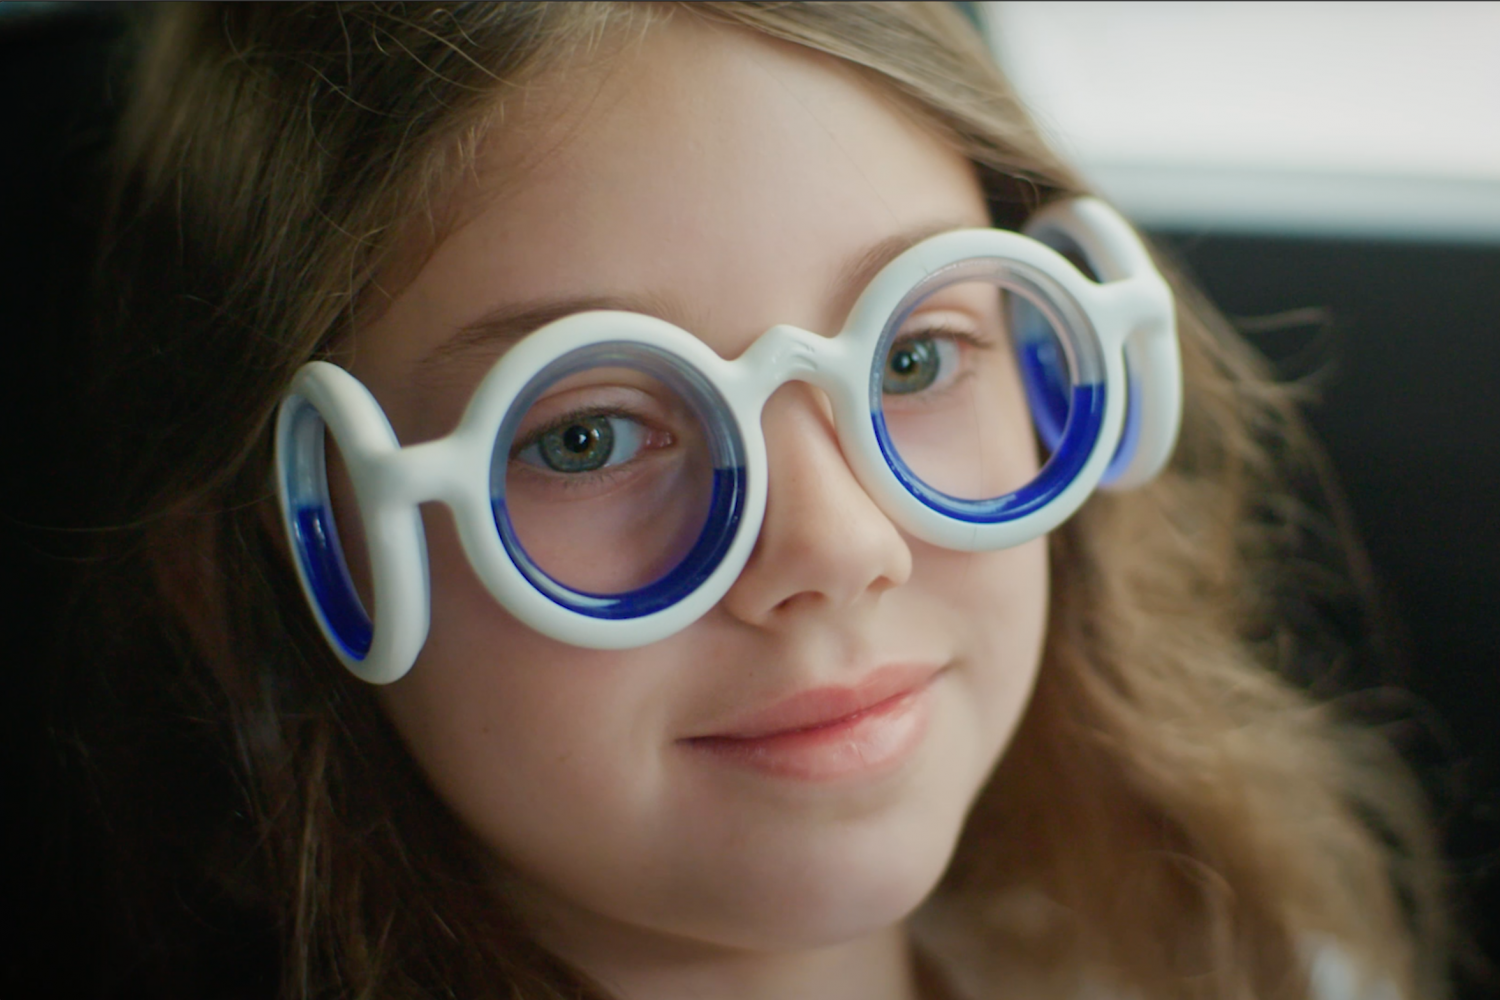 Could these unusual glasses be the cure for travel sickness?